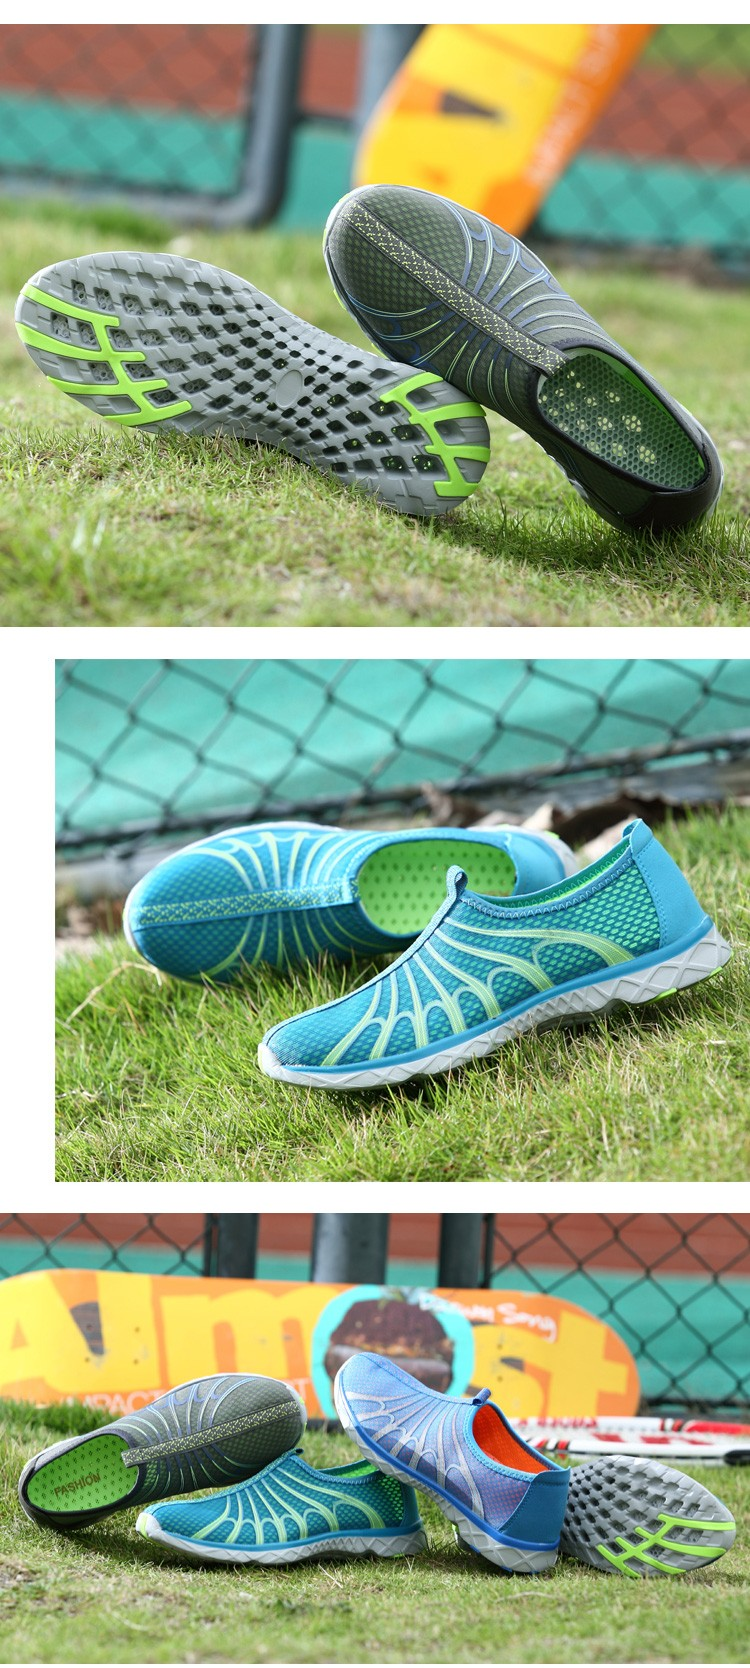 Fashion Aqua Shoes Ultra-light Quick-drying Beach Water River Walking Summer Men Casual Breathable Flotillas Outdoor Shoes Male